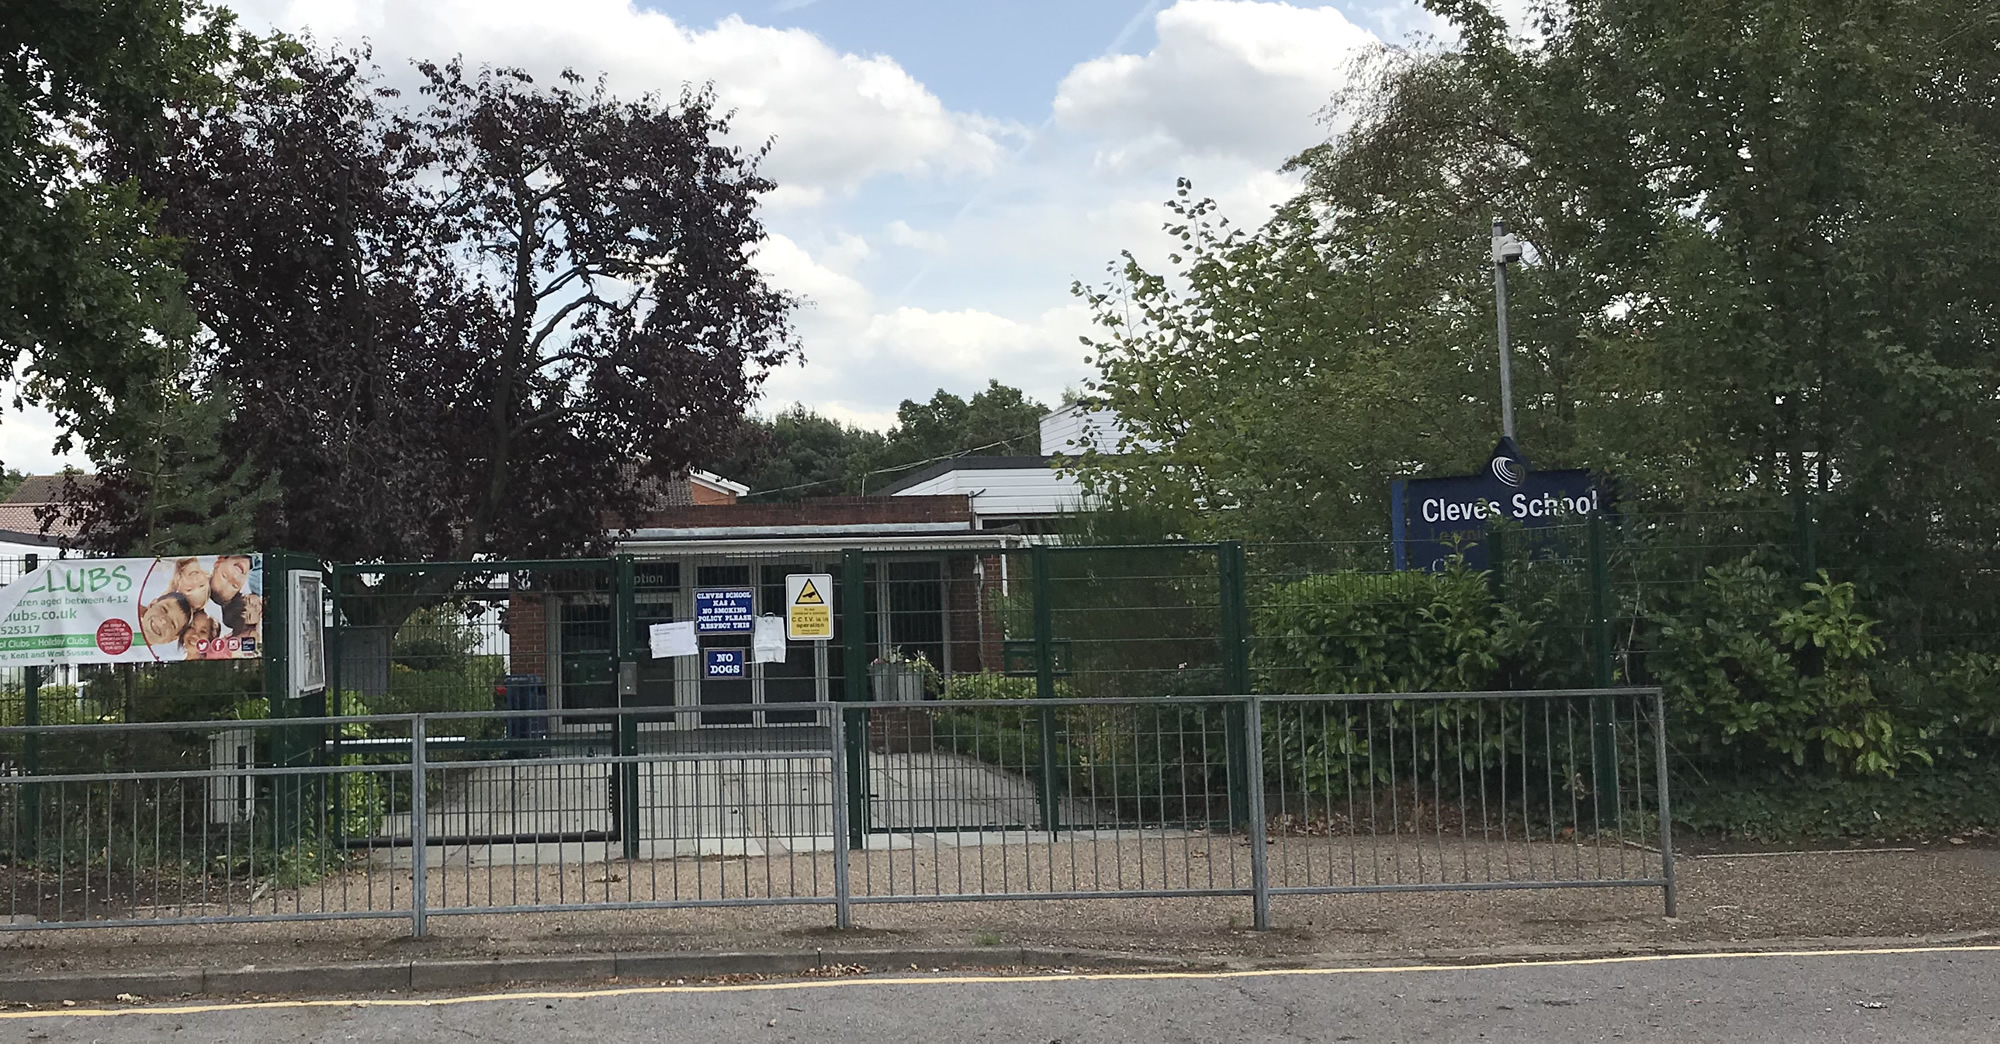 Cleves School Weybridge Surrey